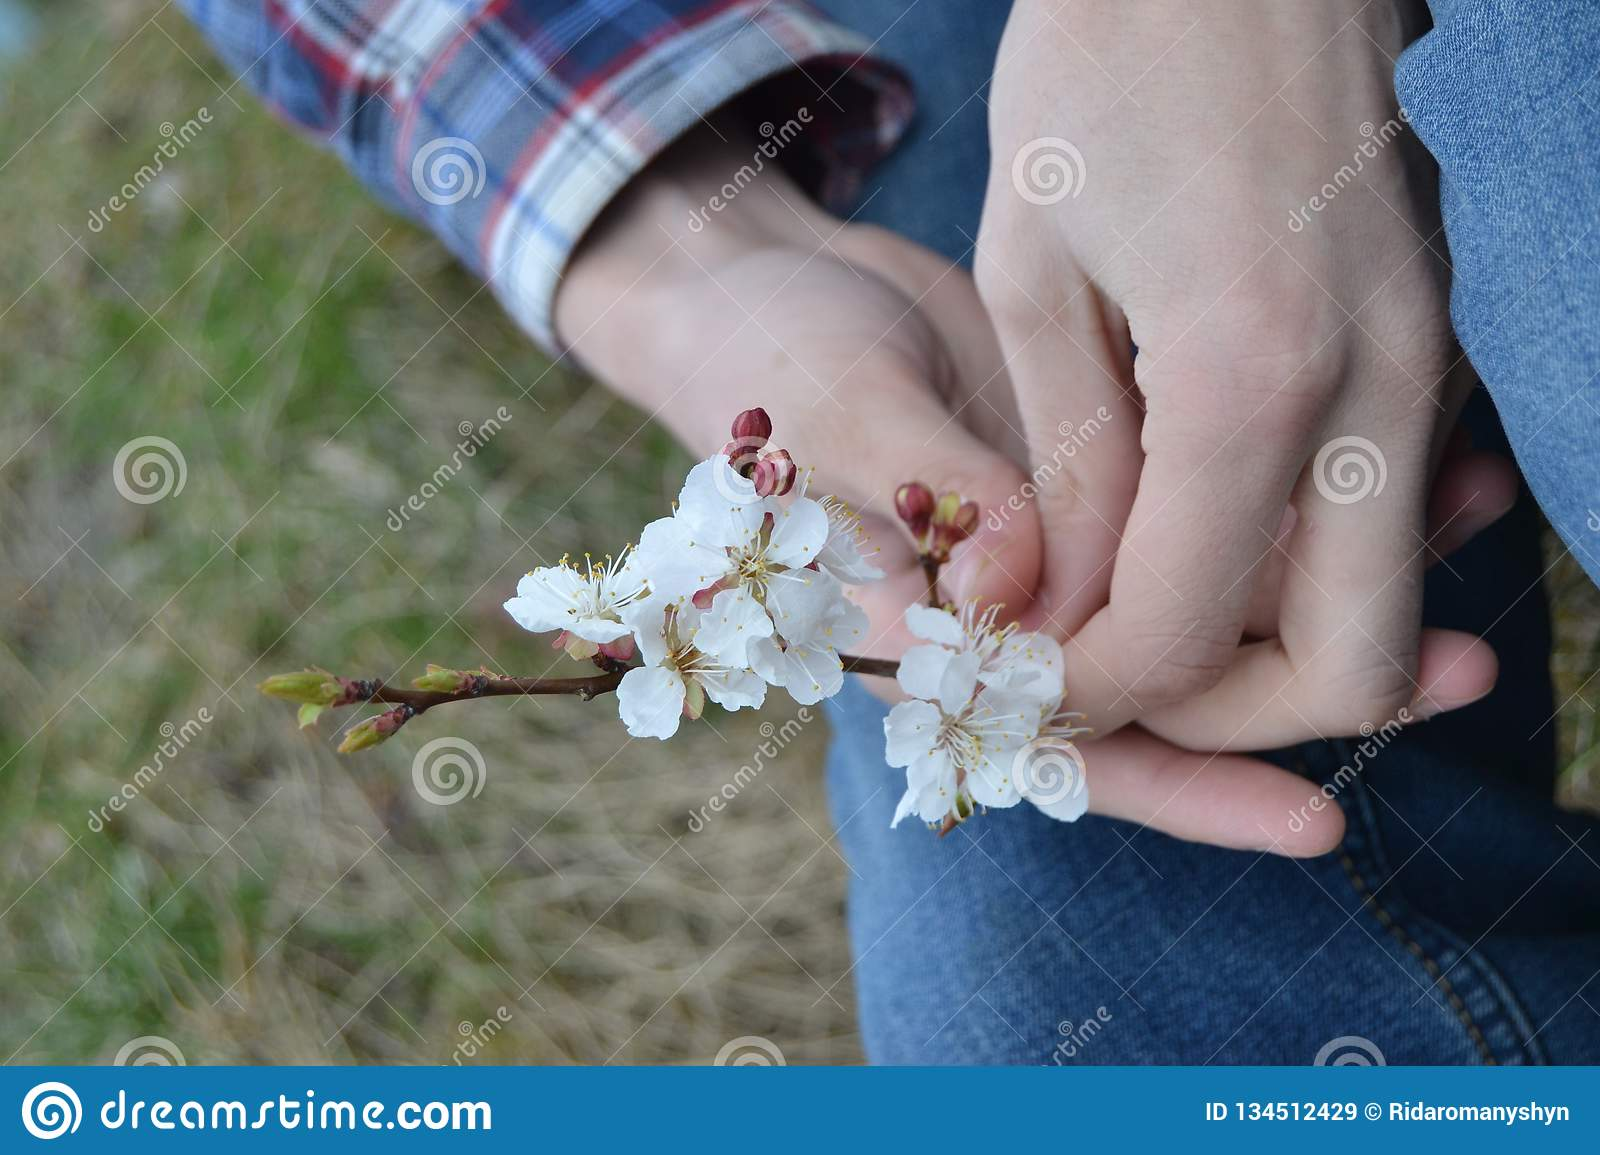 apricot flowers in the hands of a man. Spring flowers